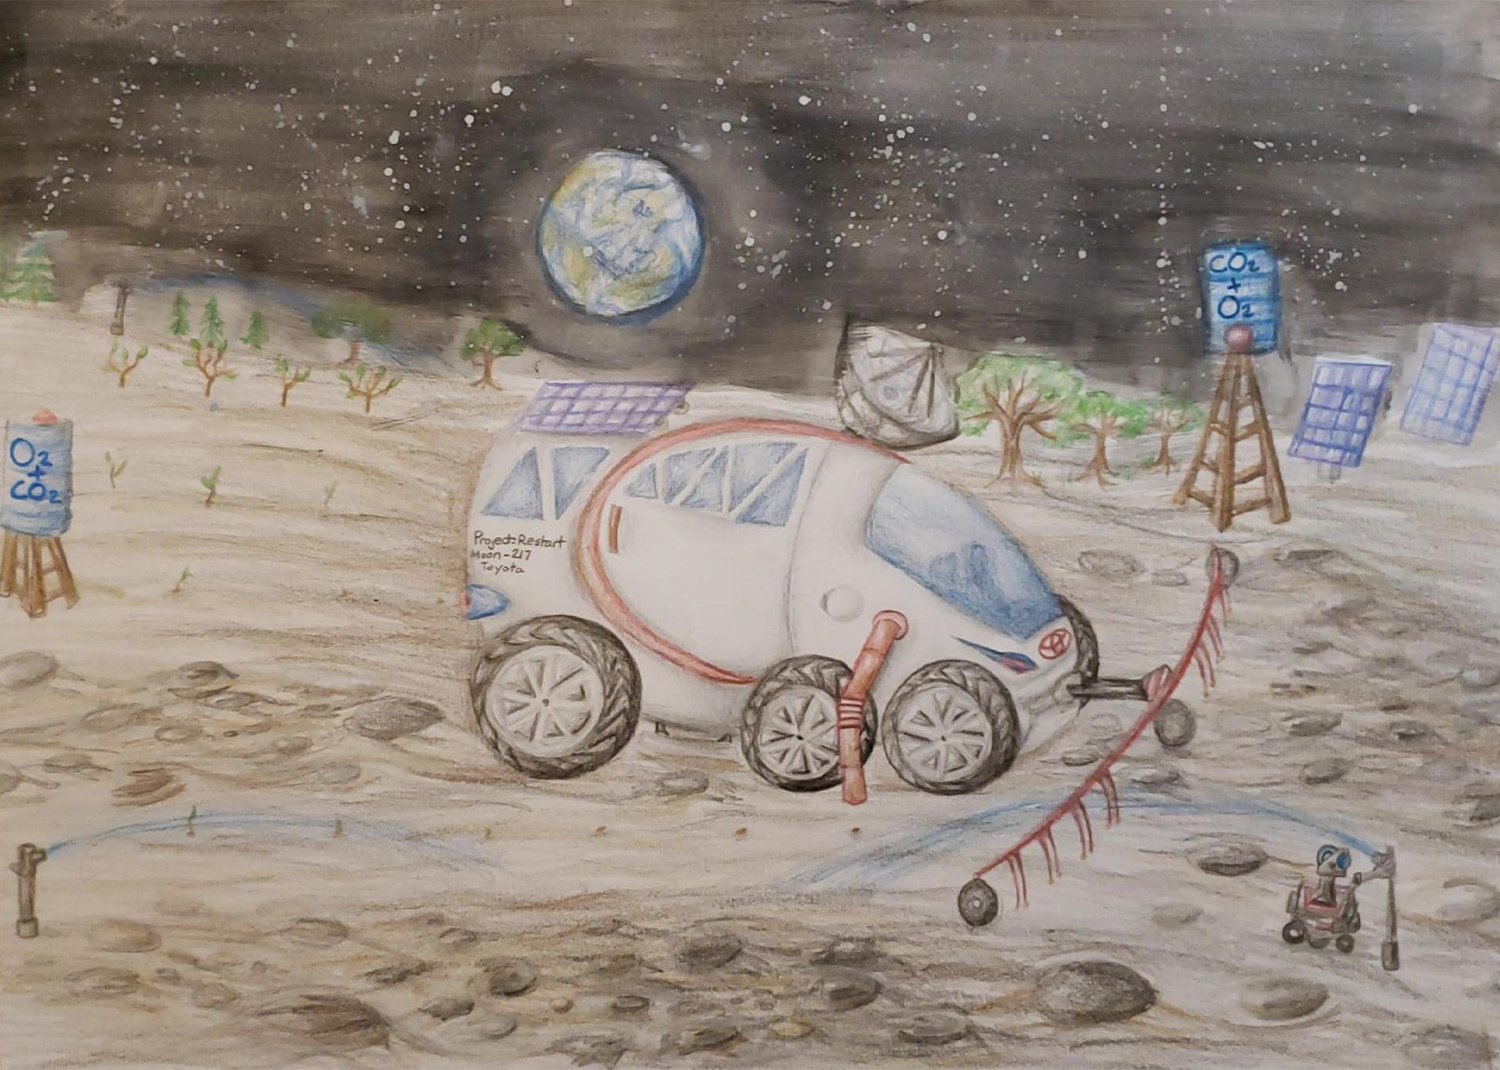 Moon Planter, Jaelie Young, age 13